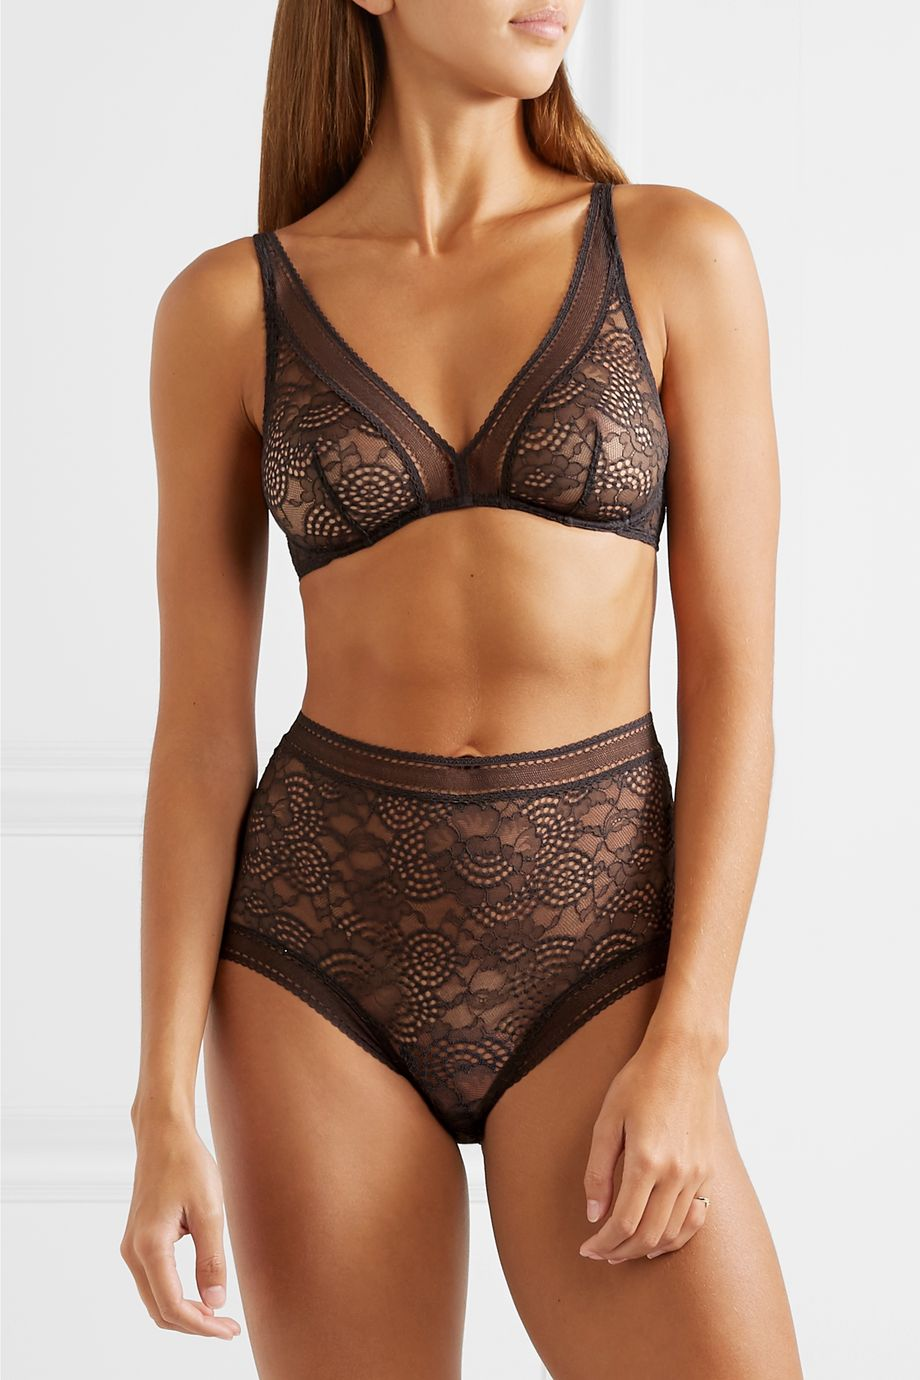 Eres Belle de Nuit Chagrin stretch-lace soft-cup triangle bra